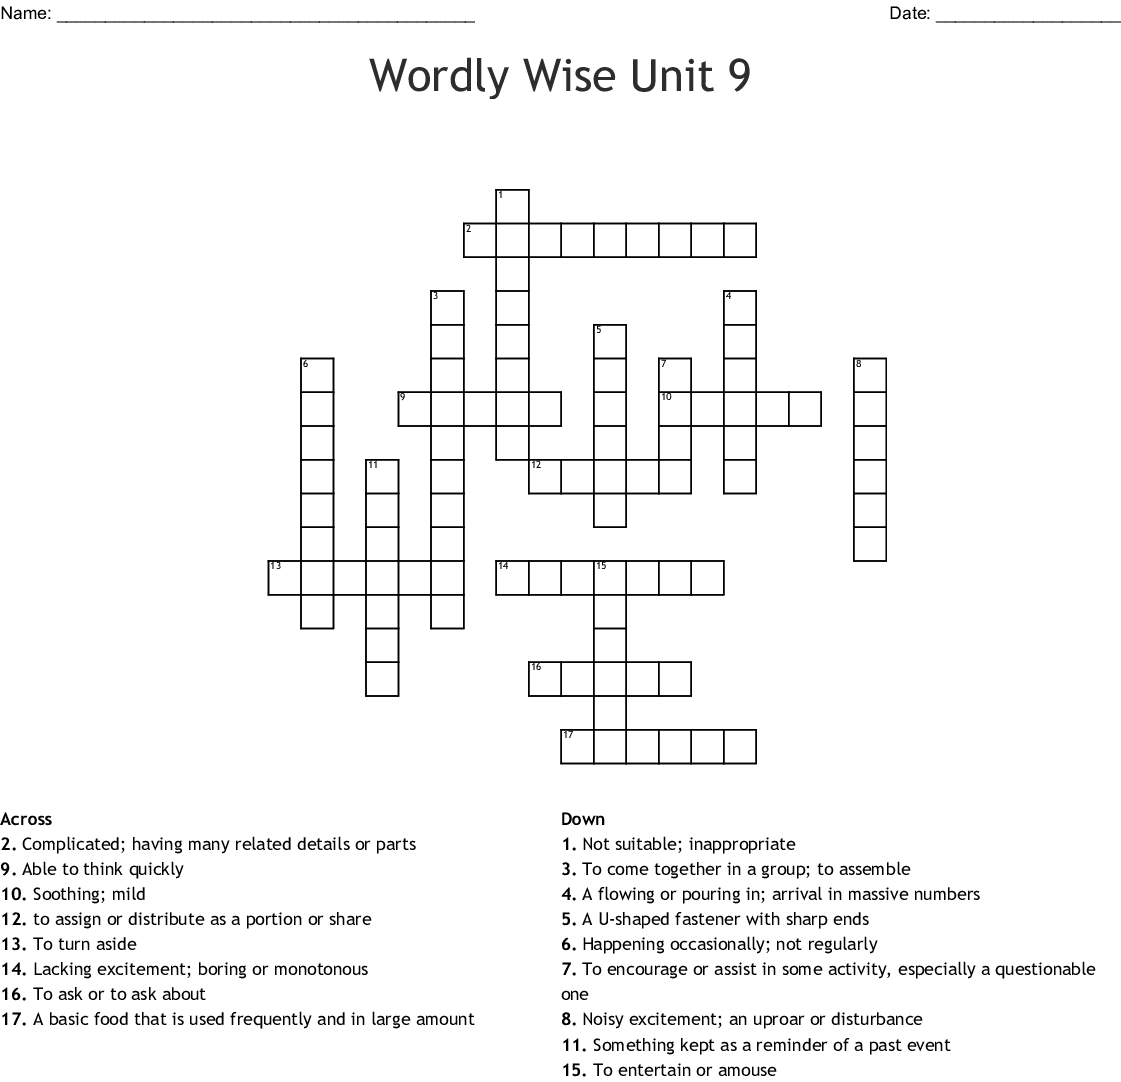 WORDLY WISE VOCABULARY #9 Crossword - WordMint